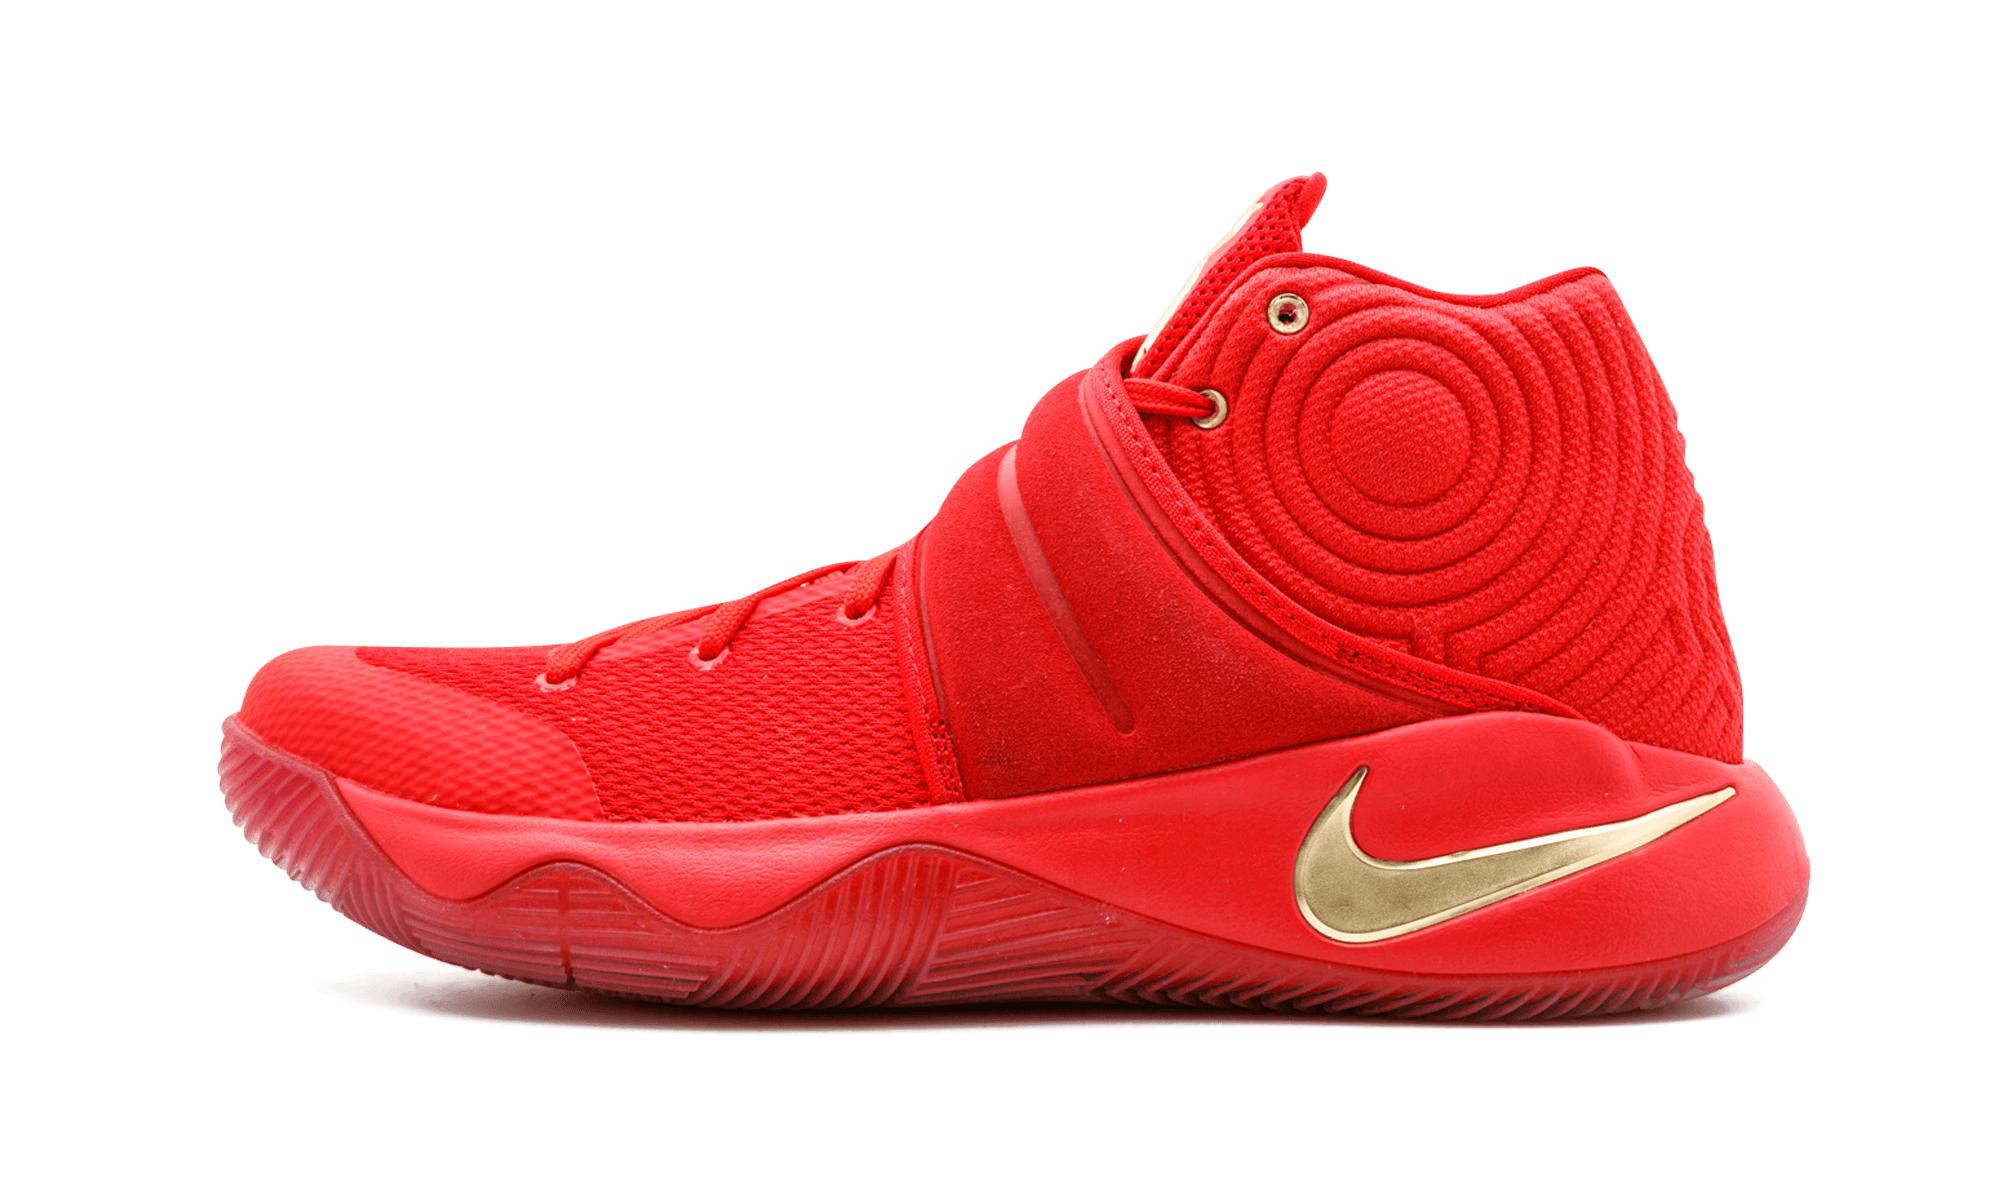 233b125c904b Lyst - Nike Kyrie 2 Lmtd in Red for Men - Save 33%